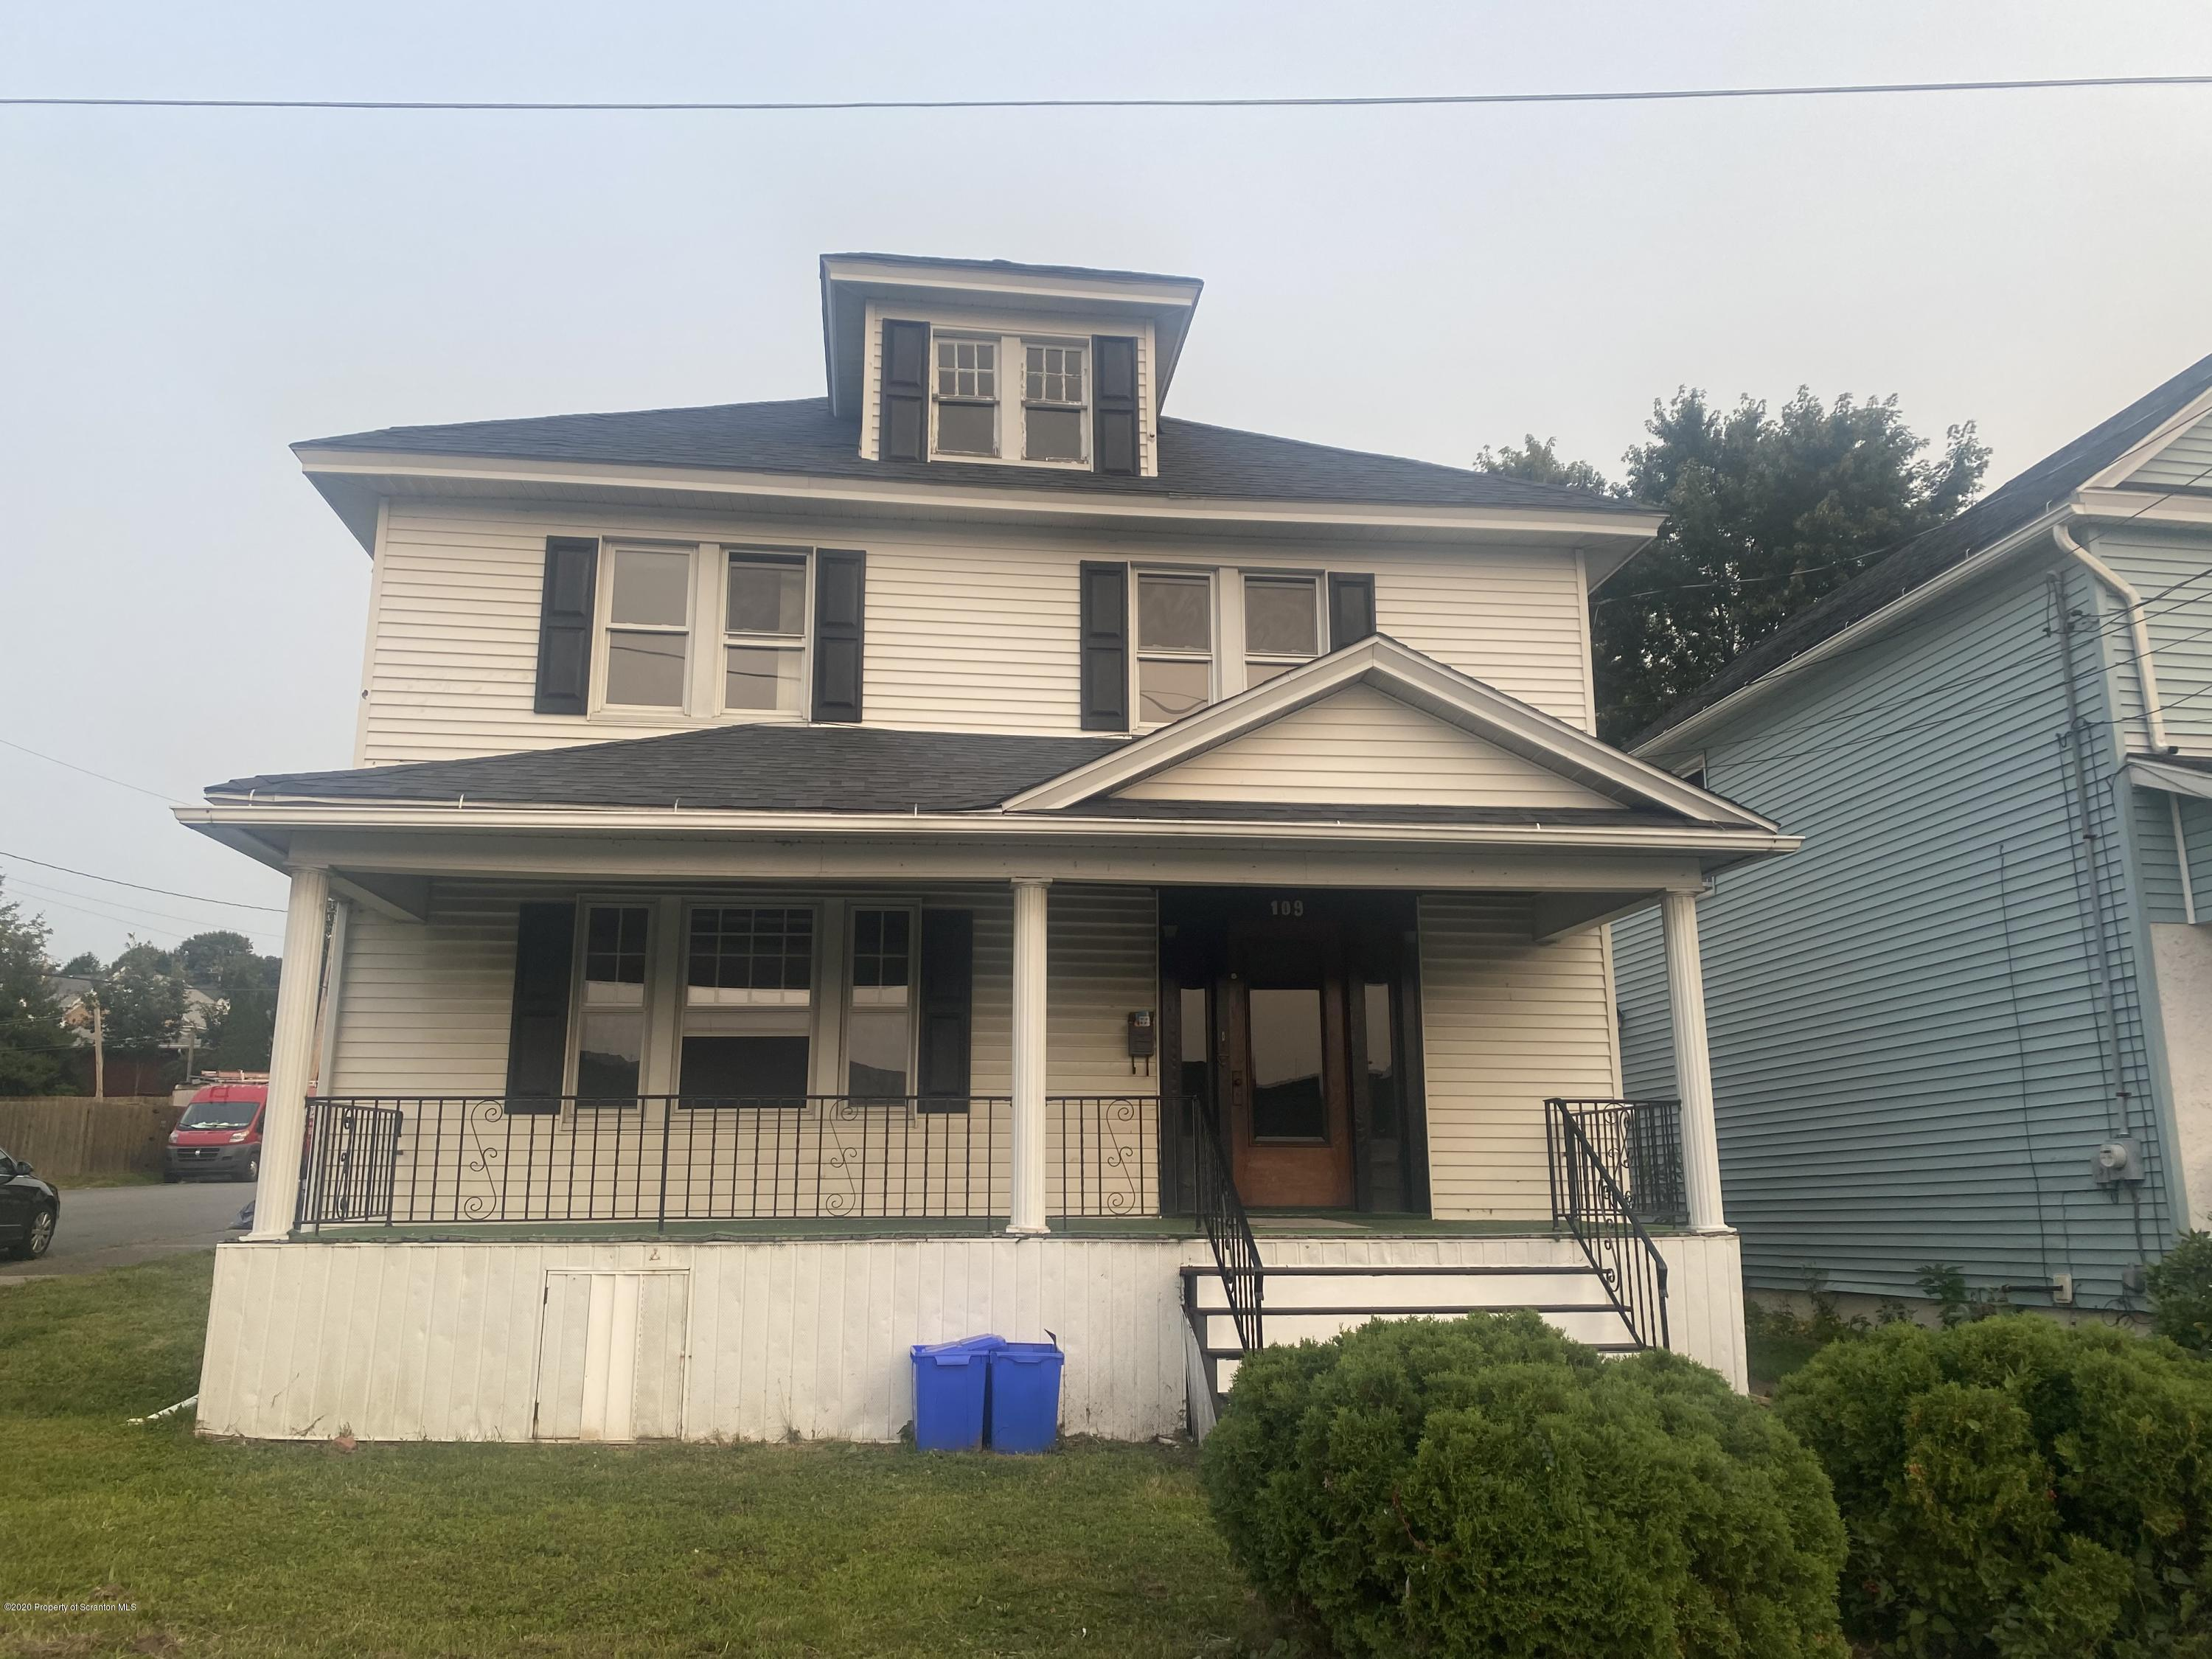 109 Sanderson St, Olyphant, Pennsylvania 18447, 4 Bedrooms Bedrooms, 8 Rooms Rooms,2 BathroomsBathrooms,Single Family,For Sale,Sanderson,20-3854